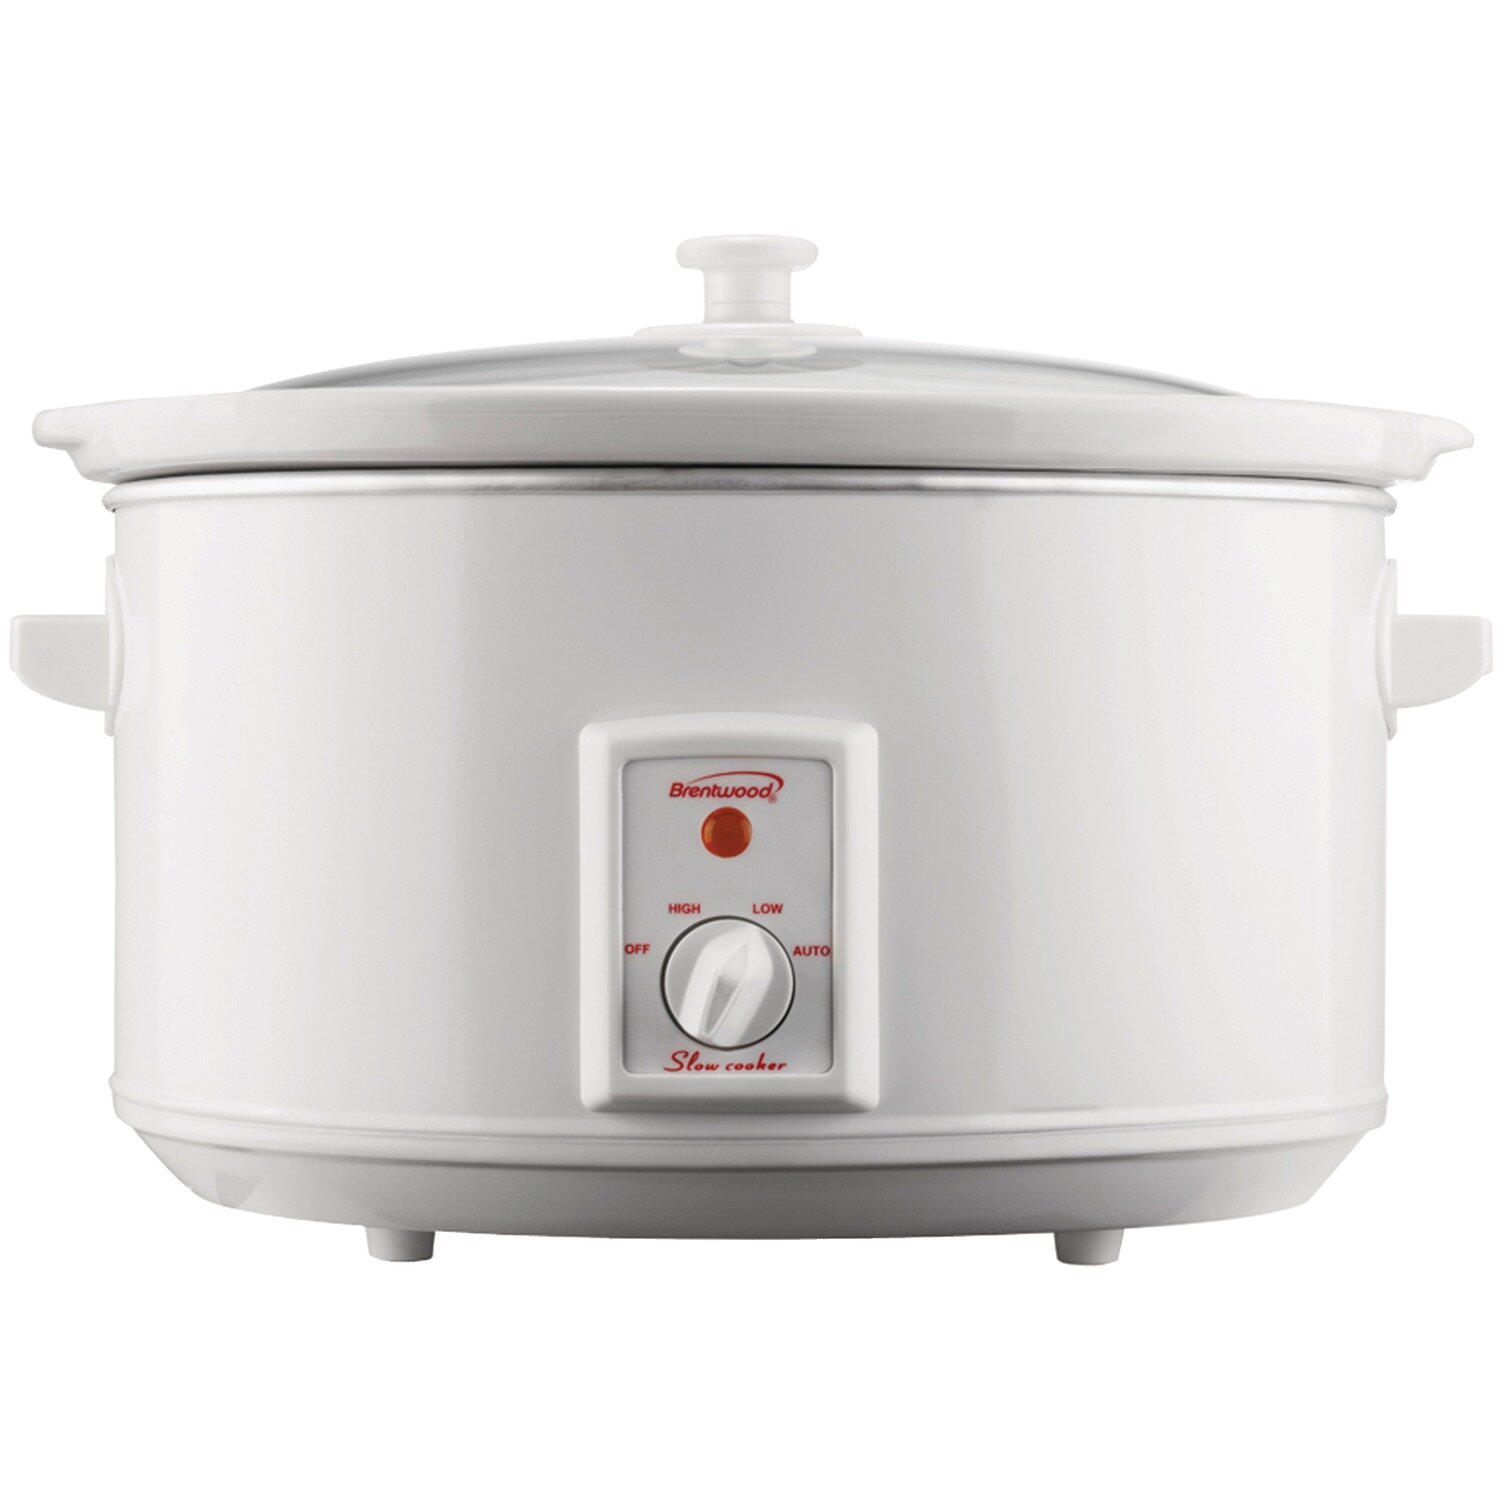 Brentwood 8 Quart Slow Cooker Reviews